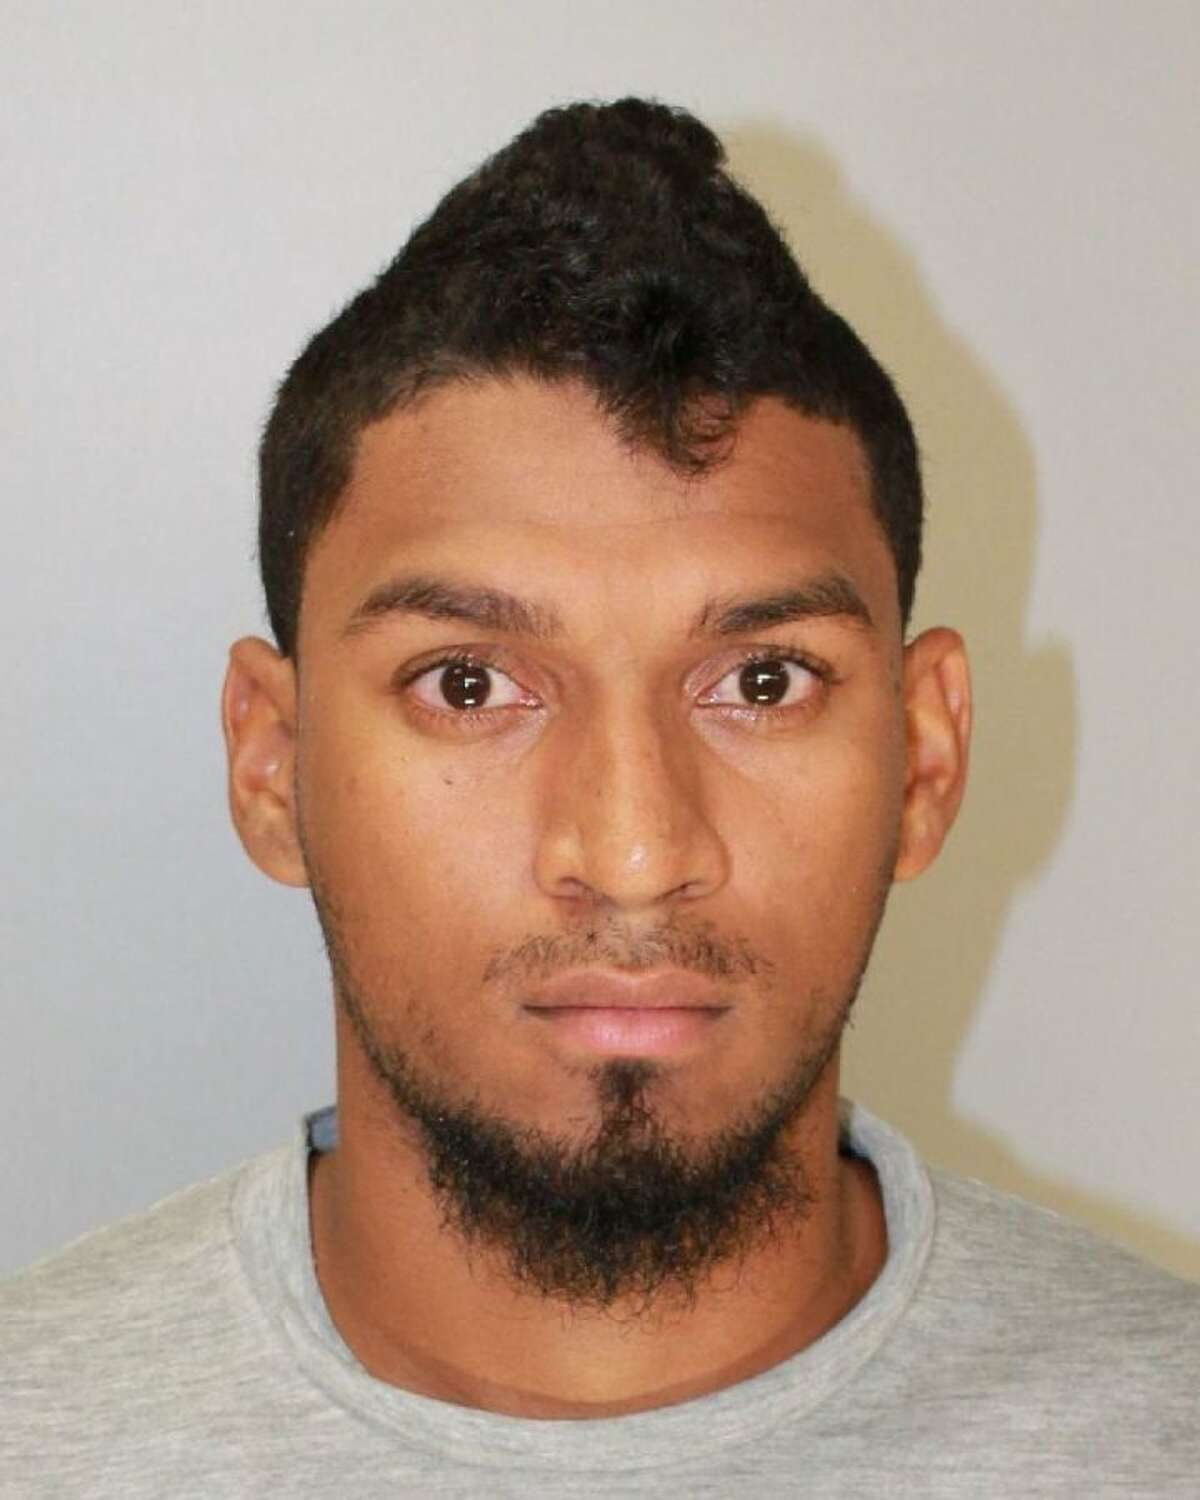 Astros minor leaguer Danry Vasquez was placed on administrative league by Major League Baseball after being arrested on suspicion of assault family violence.